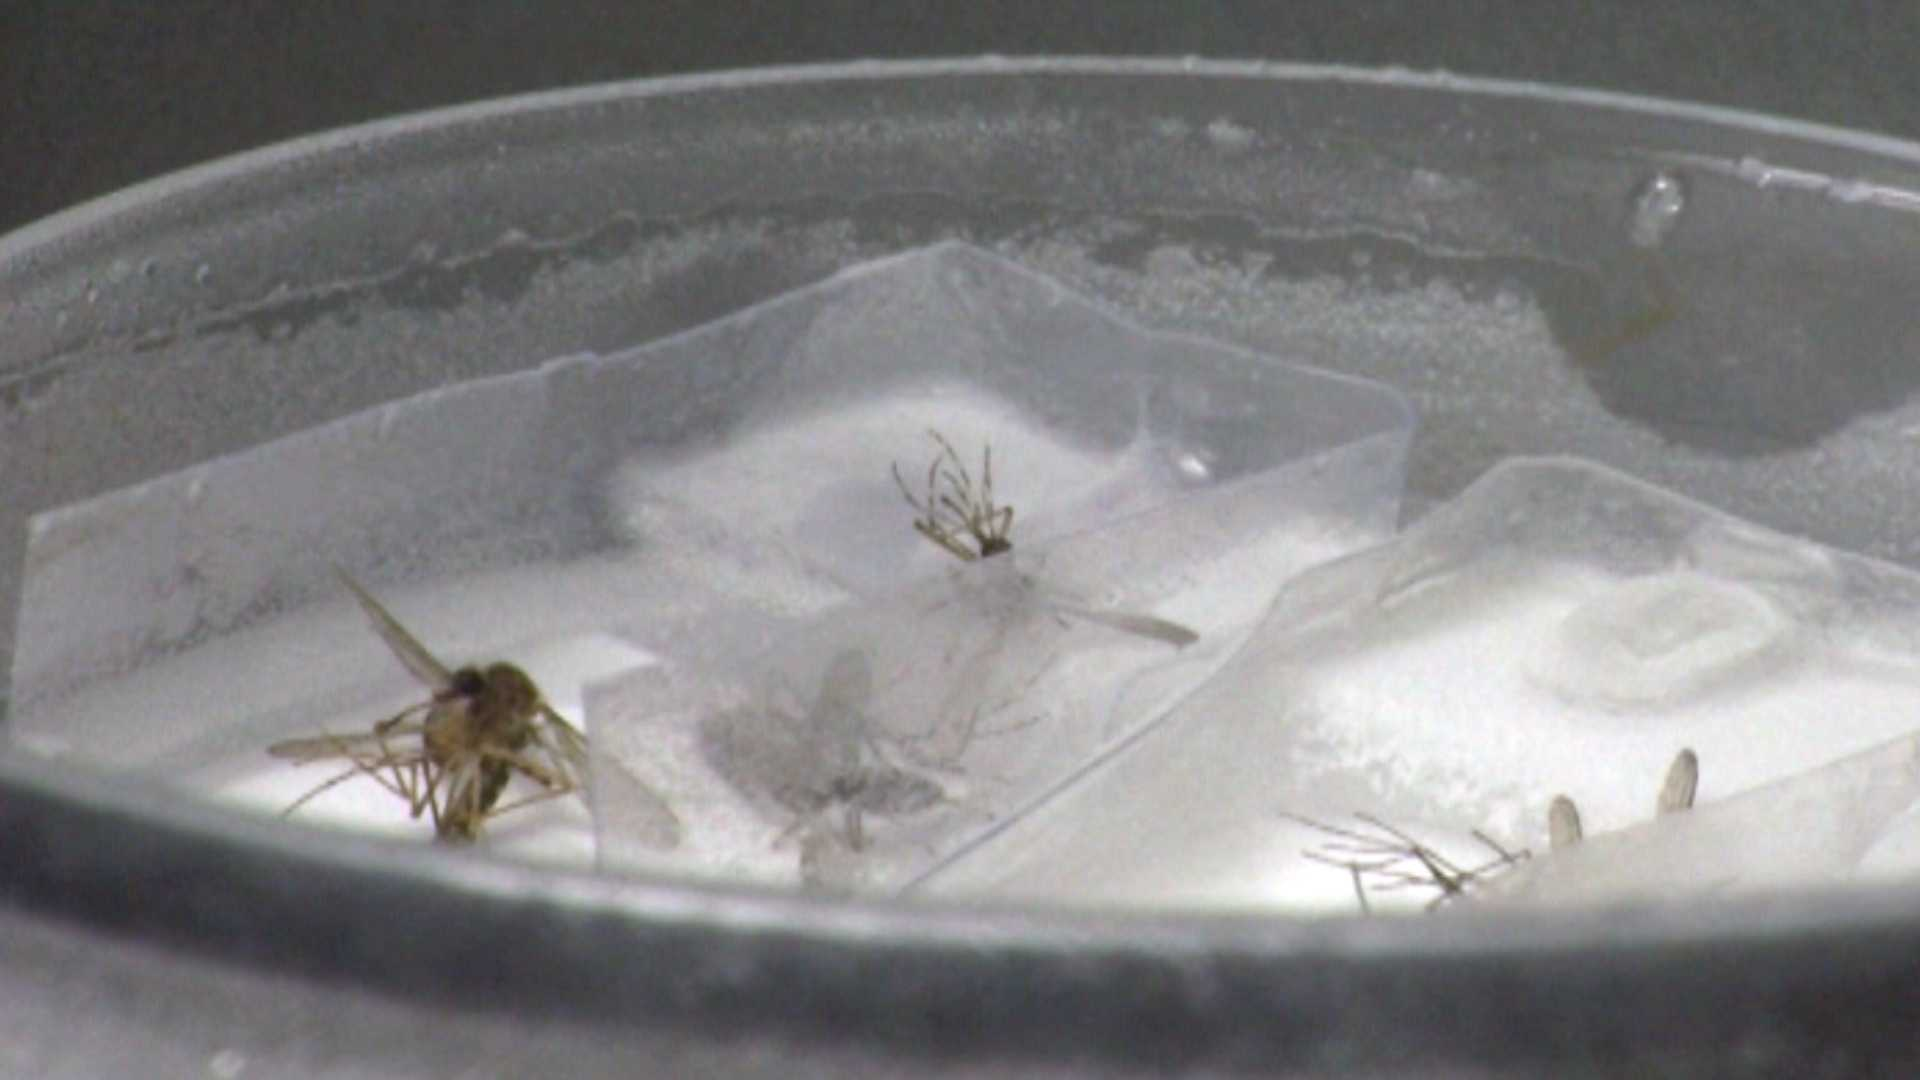 Health officials warn the threat of contracting potentially deadly mosquito-borne illnesses is not over.